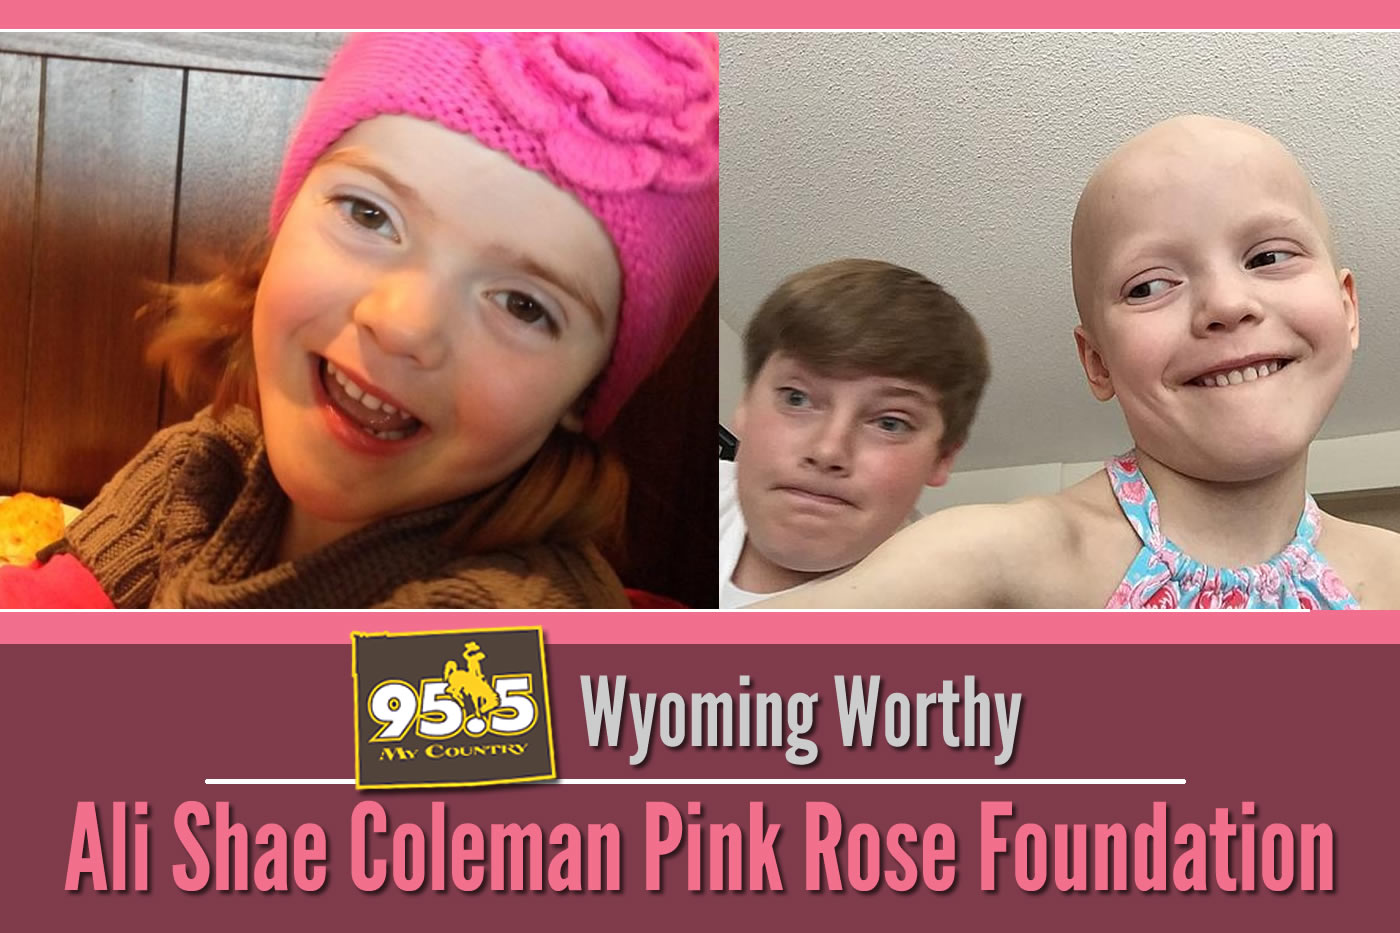 The Pink Rose Foundation featured on My Country 95.5